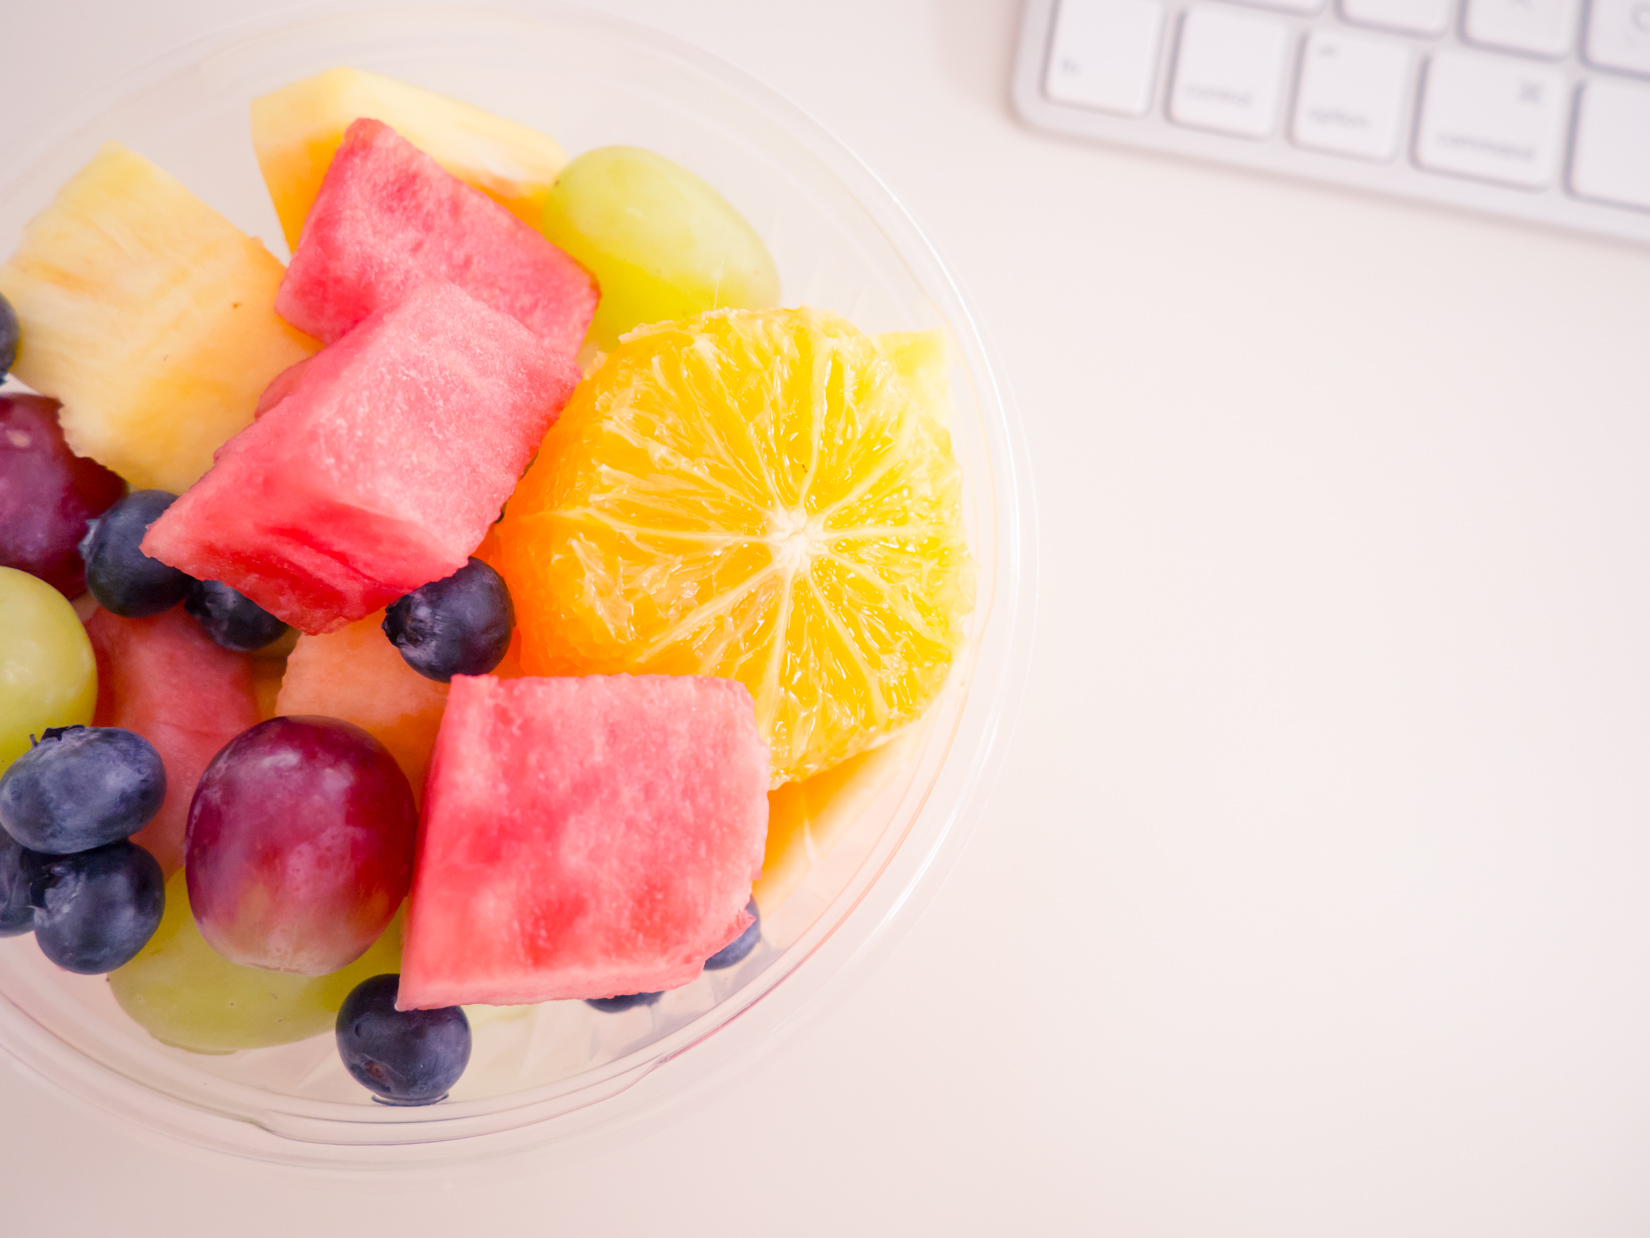 Fruit in Cup on Desk